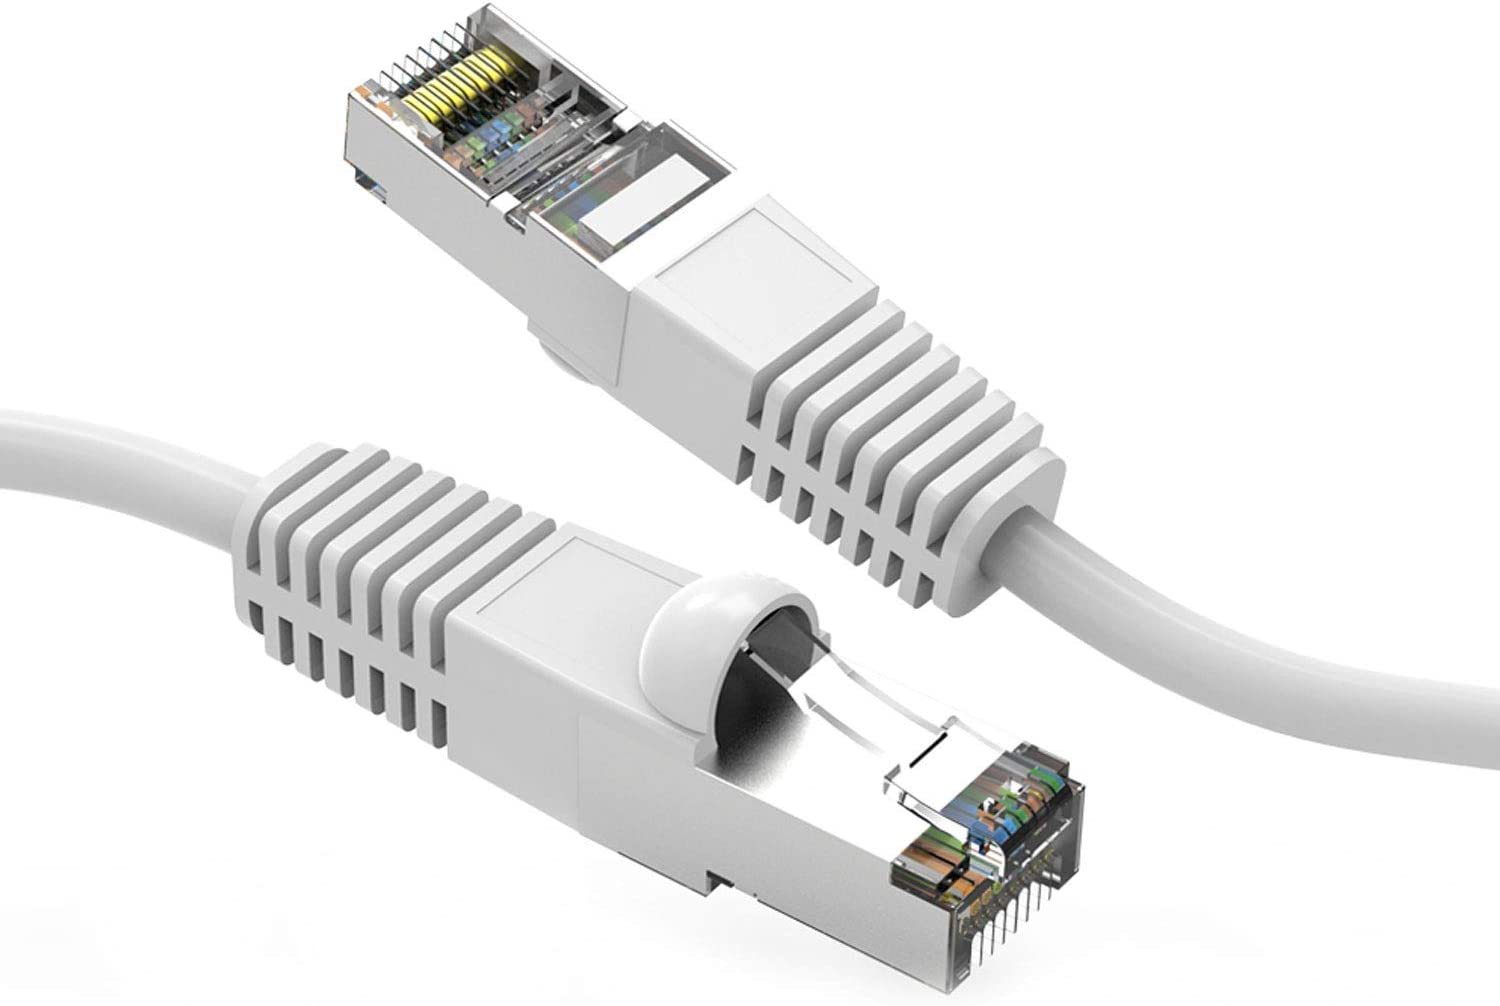 10 Gigabit//Sec High Speed LAN Internet//Patch Cable 3-Pack - 3 Feet 24AWG Network Cable with Gold Plated RJ45 Molded//Booted Connector White CABLECHOICE Cat6 Shielded Ethernet Cable 550MHz